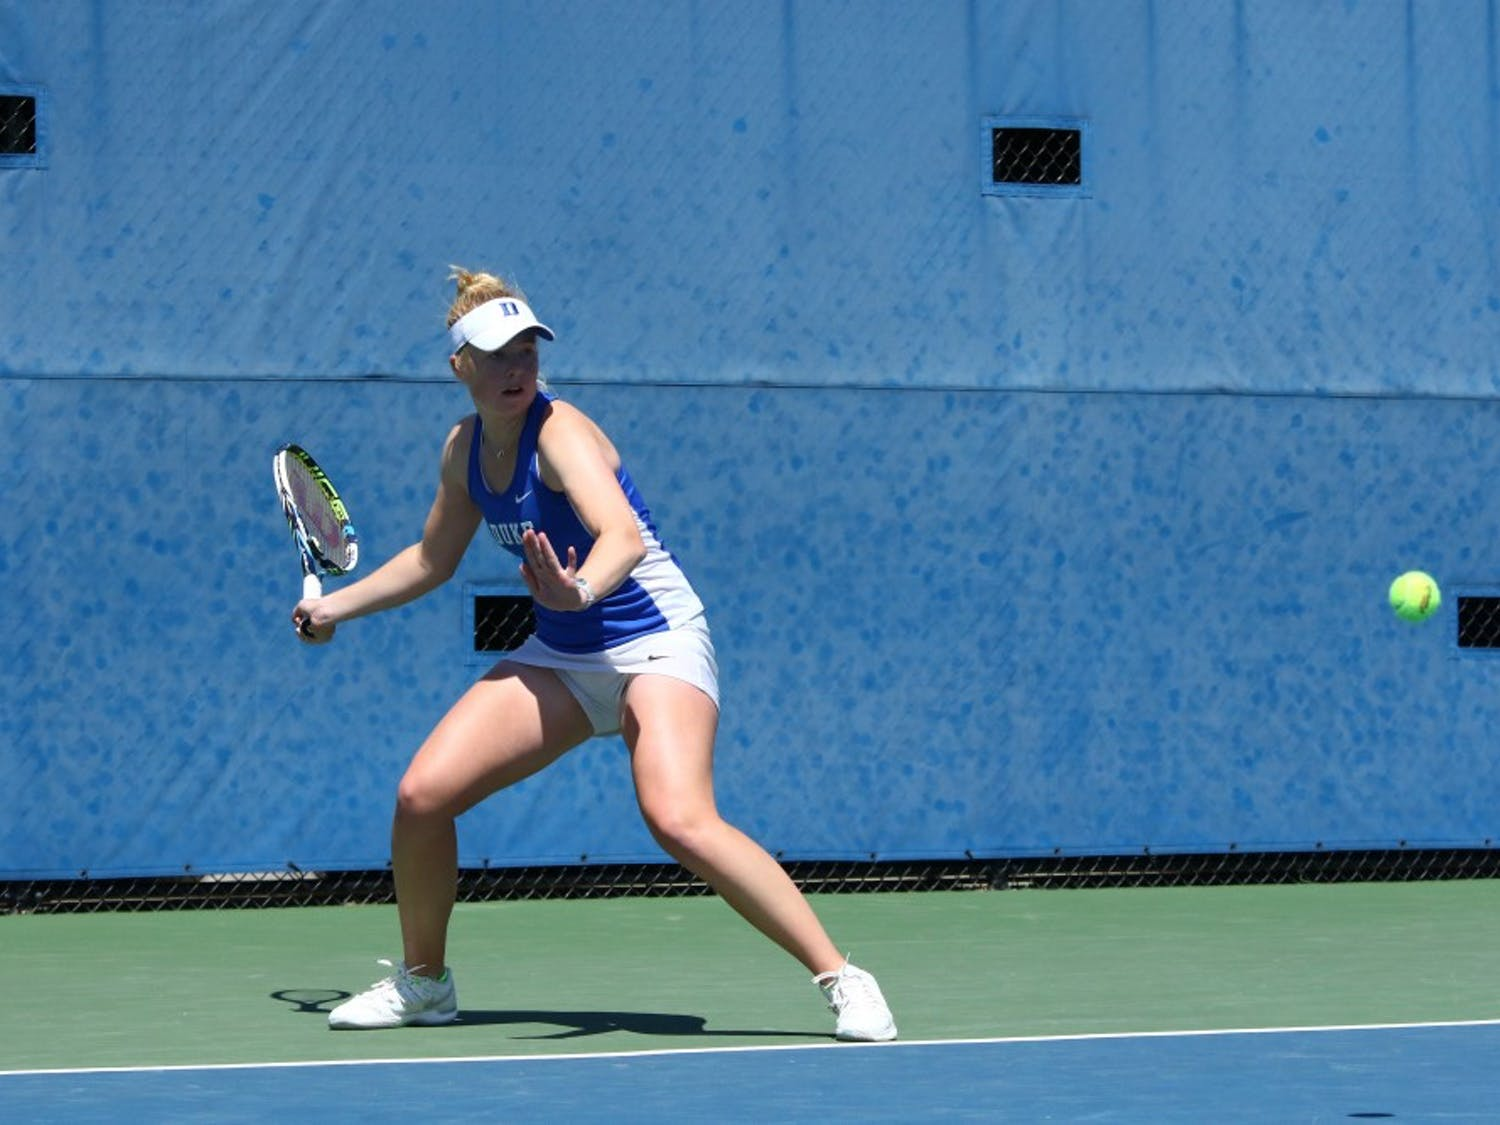 Freshman Kaitlyn McCarthy was one of five Blue Devils to close out a singles match in straight sets, dispatching No. 89 Lexi Borr 6-0, 6-2 on court two.